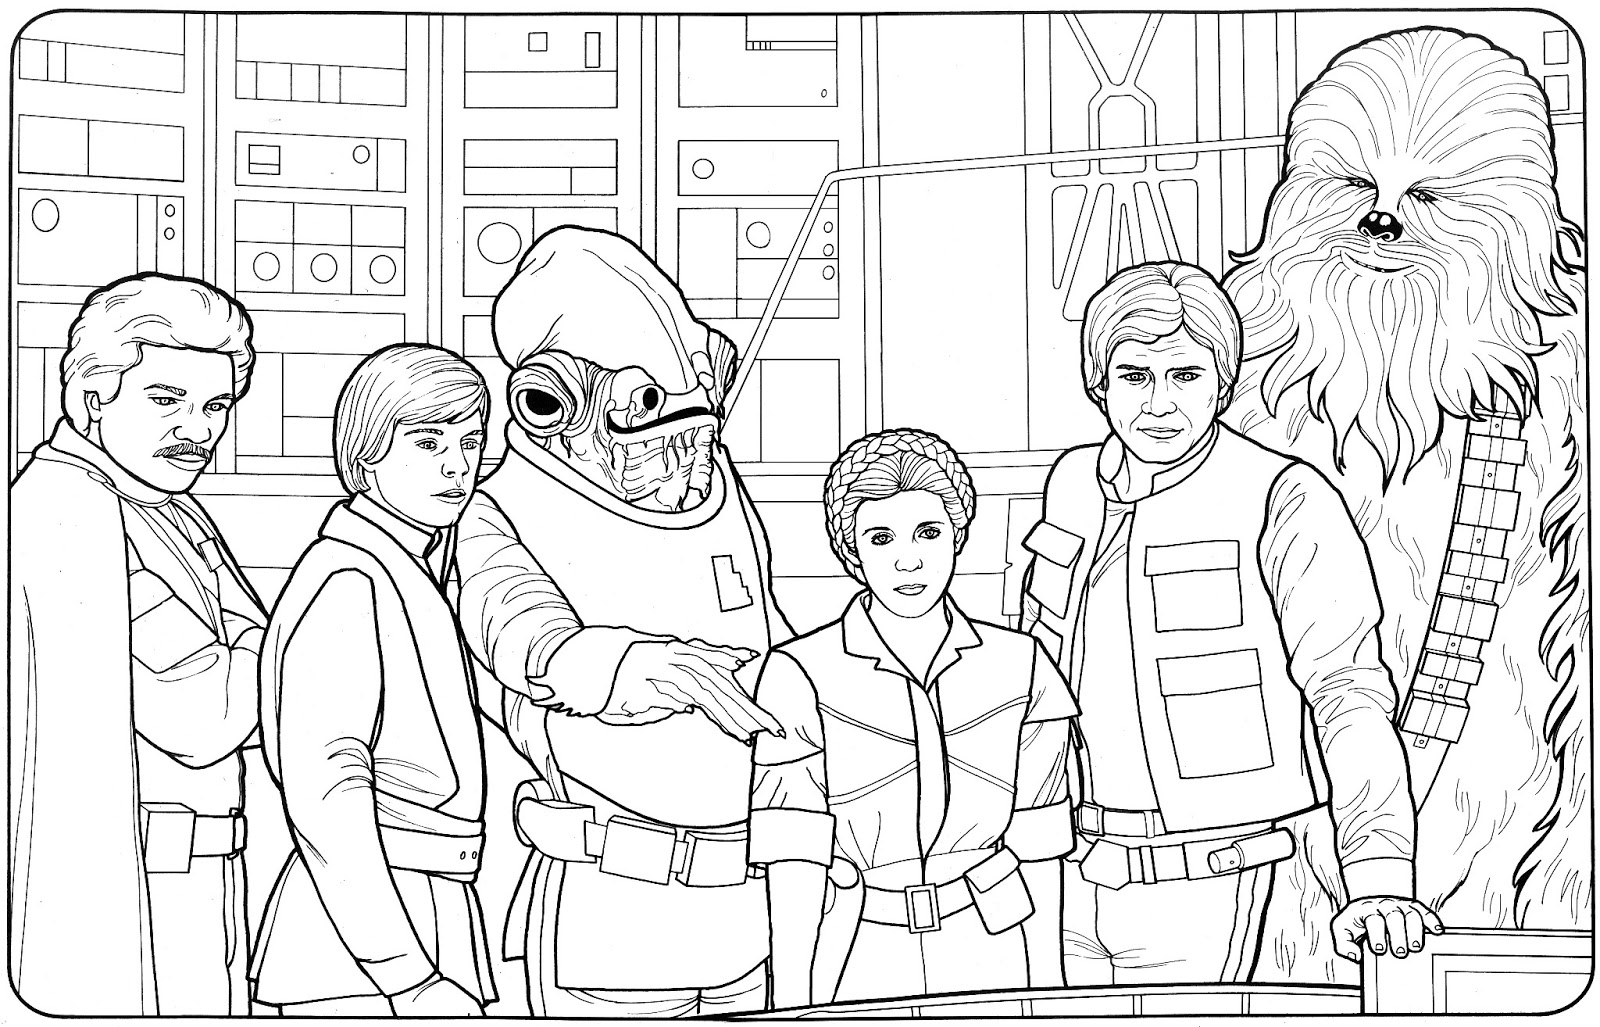 empire strikes back coloring pages - photo#16